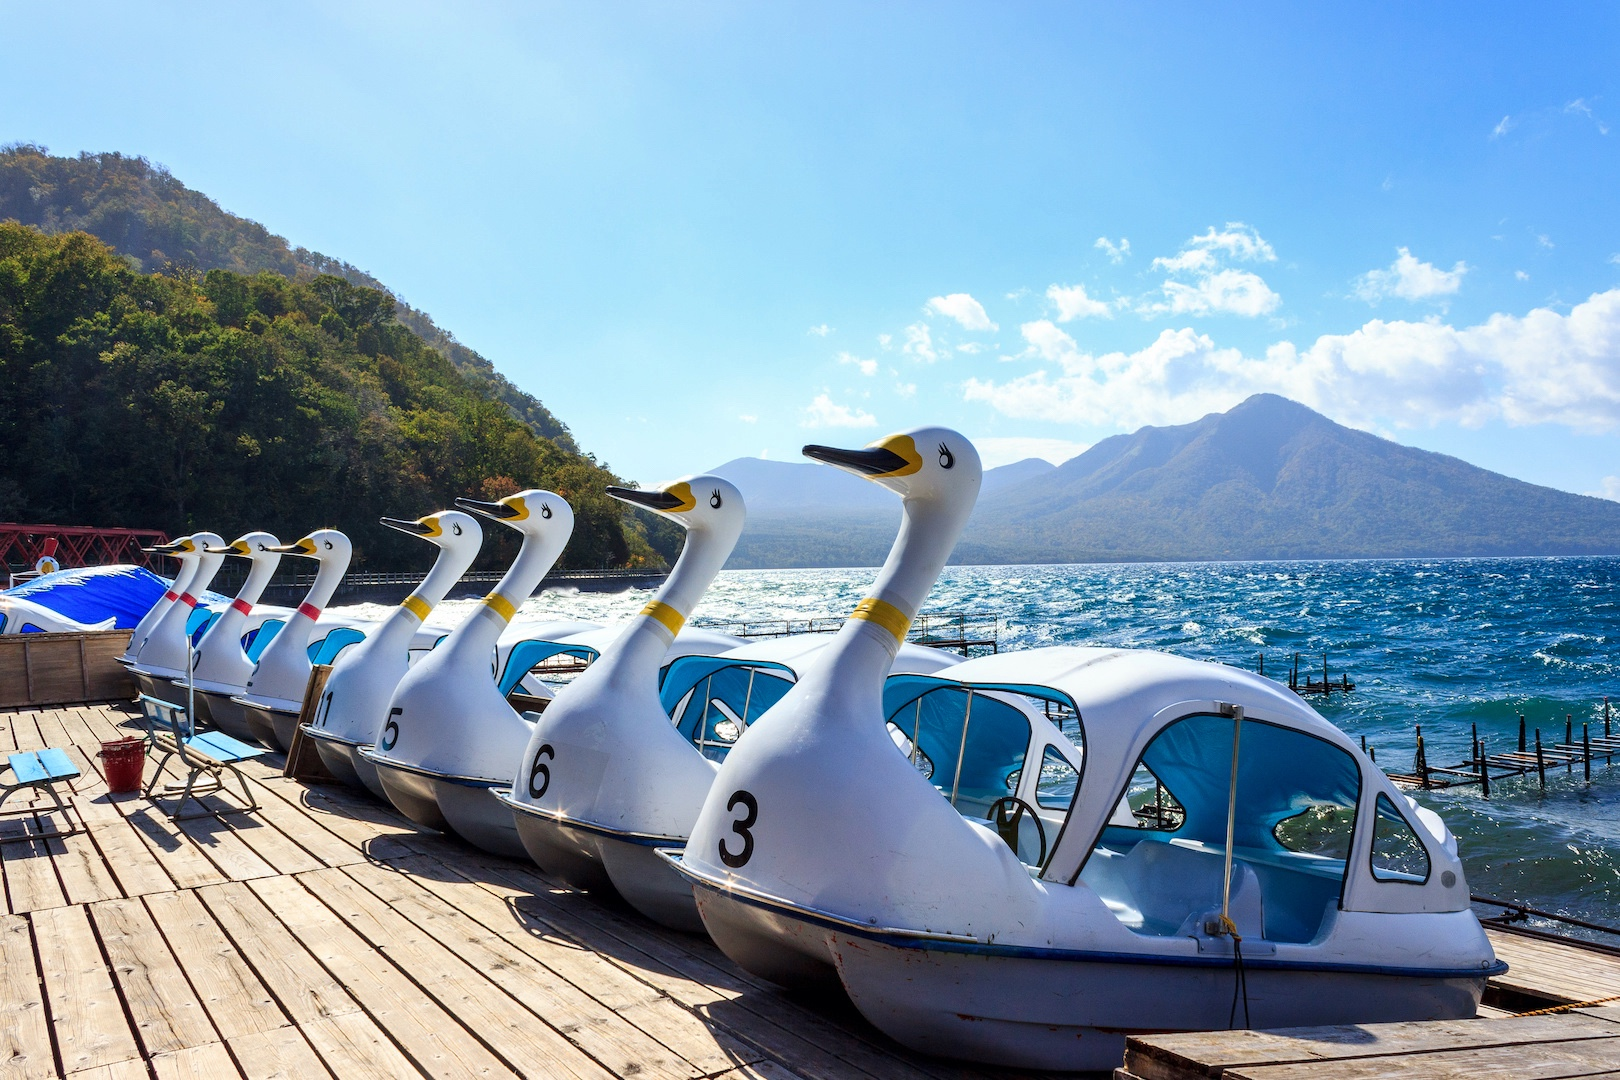 These swan boats at Lake Shikotsu are a popular attraction during the warmer months.